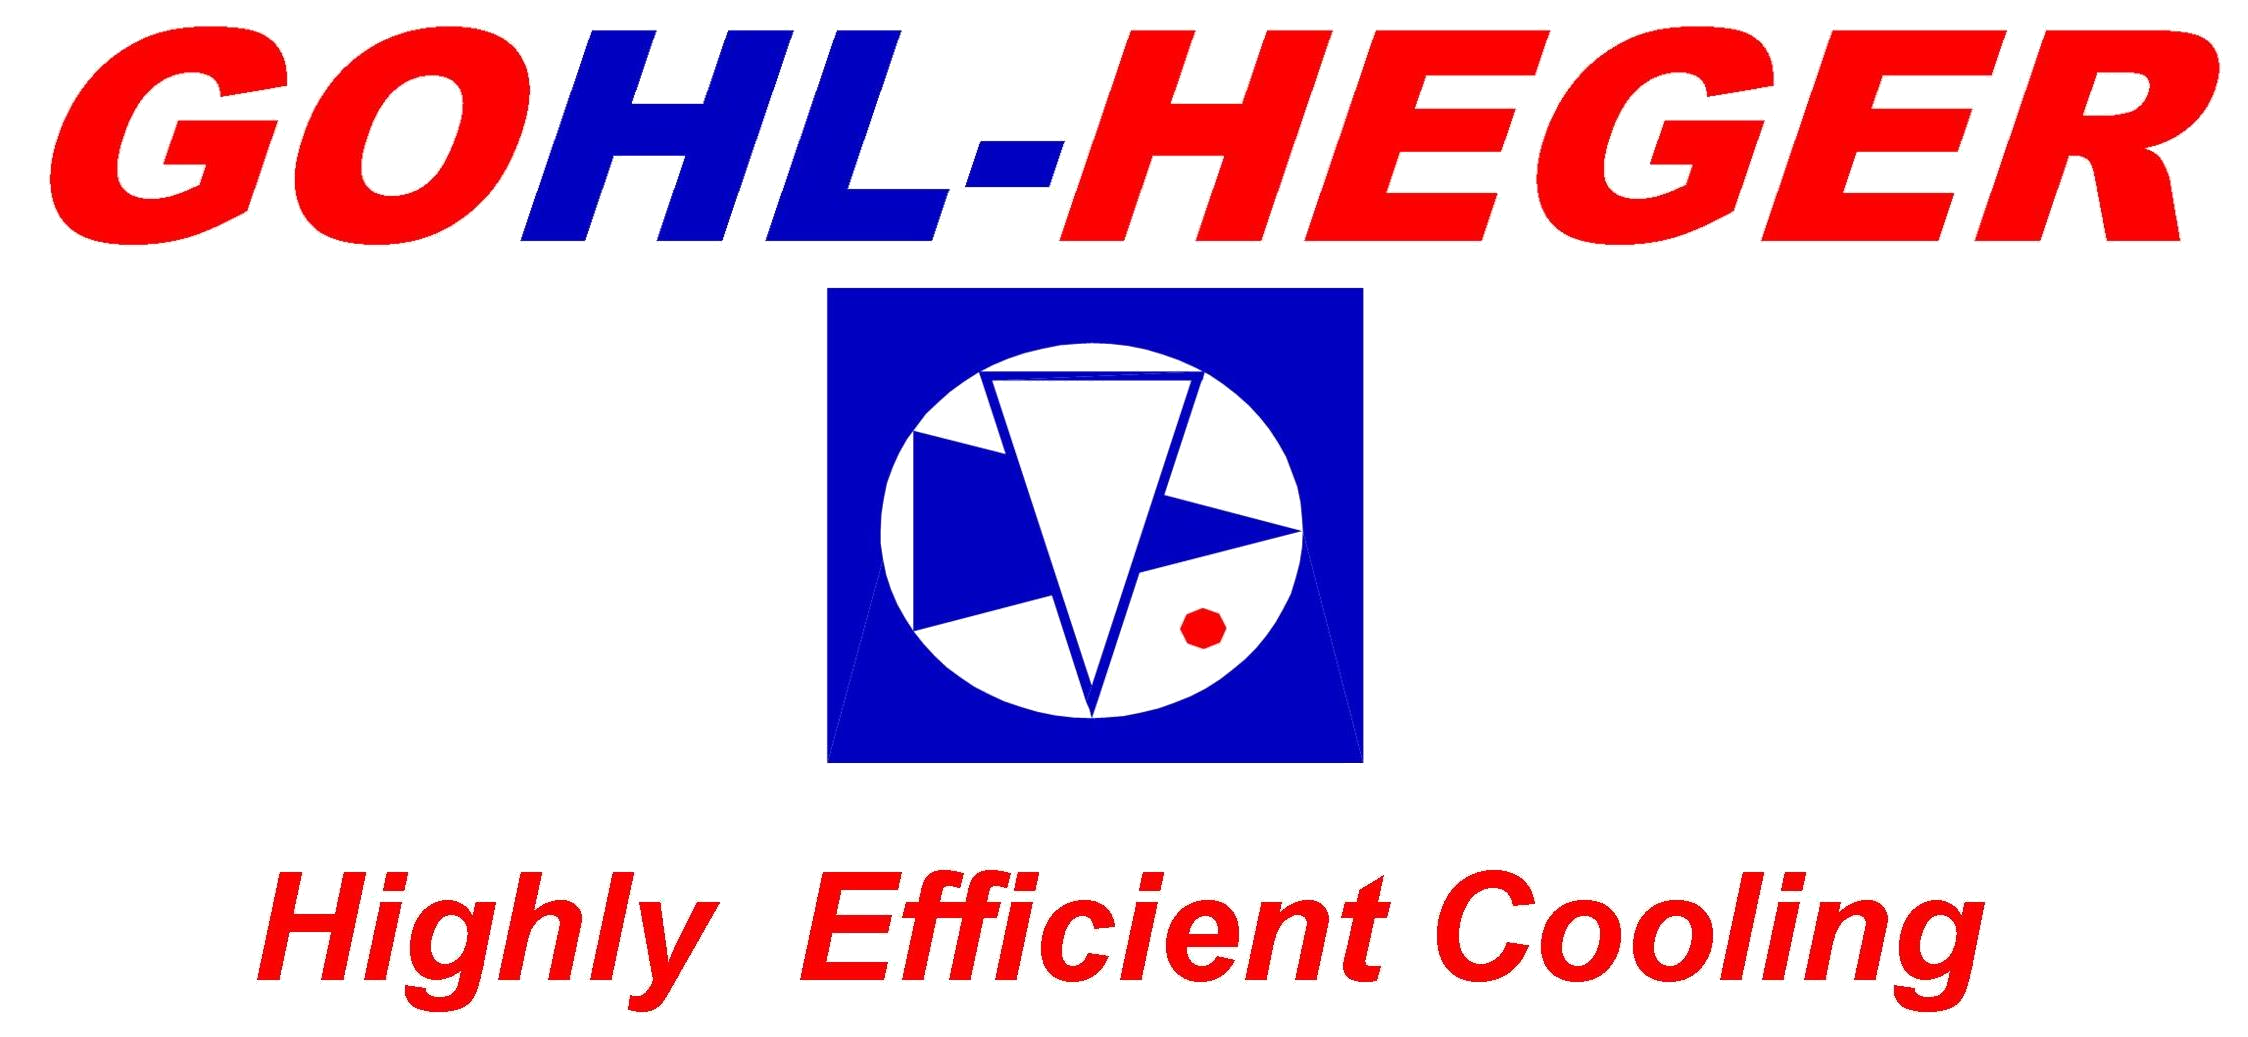 GOHL-HEGER - Highly Efficient Cooling